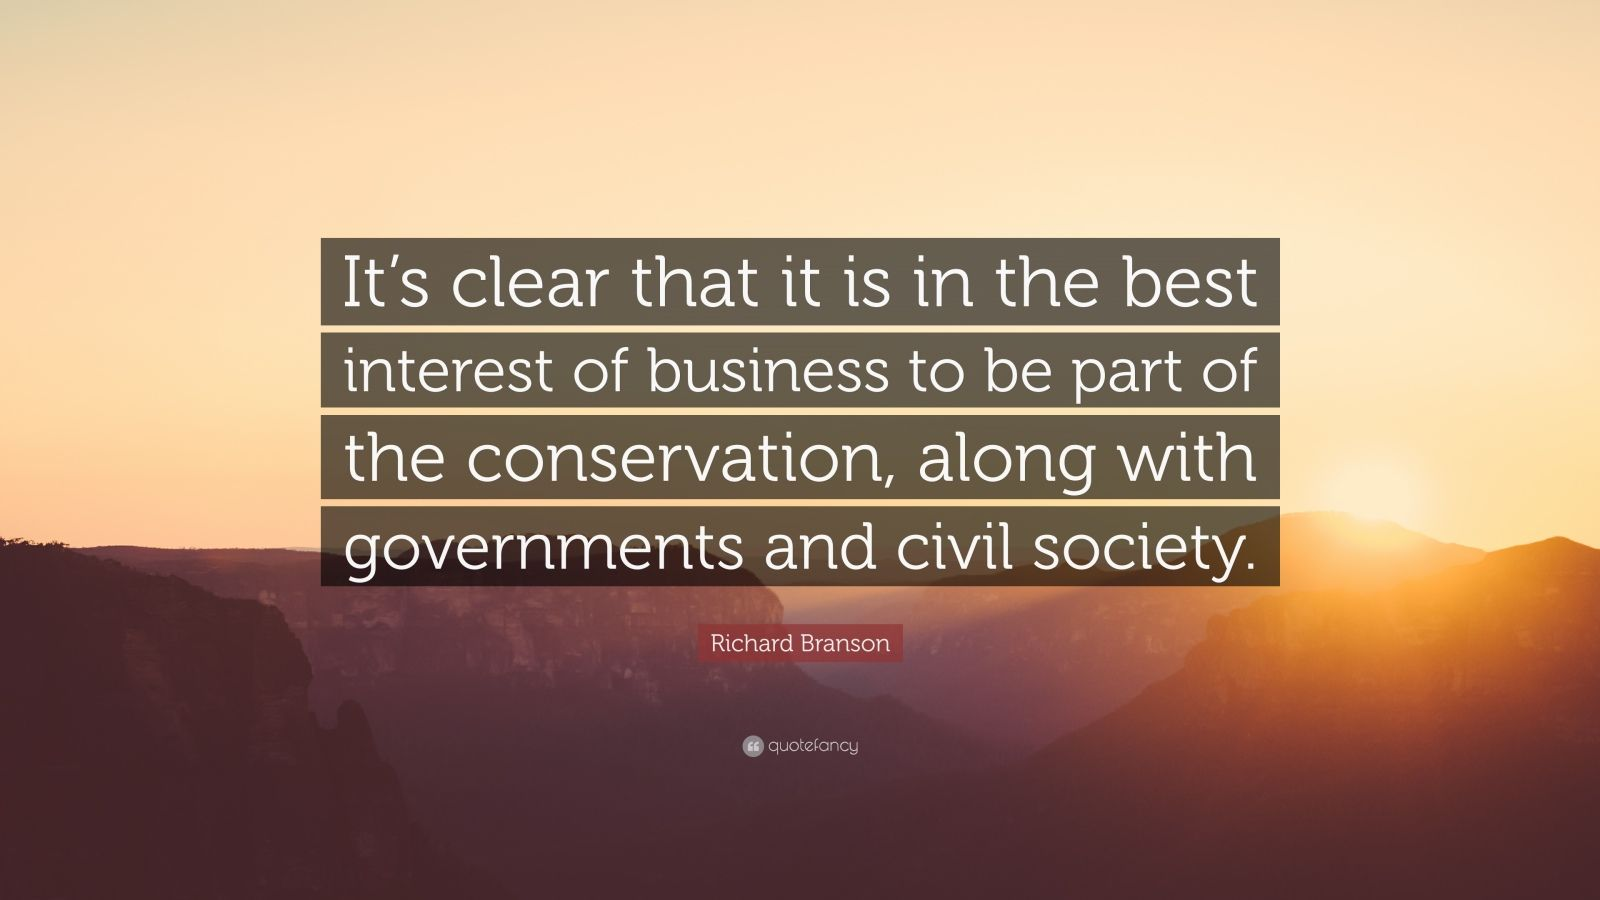 """Richard Branson Quote: """"It's clear that it is in the best interest of business to be part of the conservation, along with governments and civil society."""""""